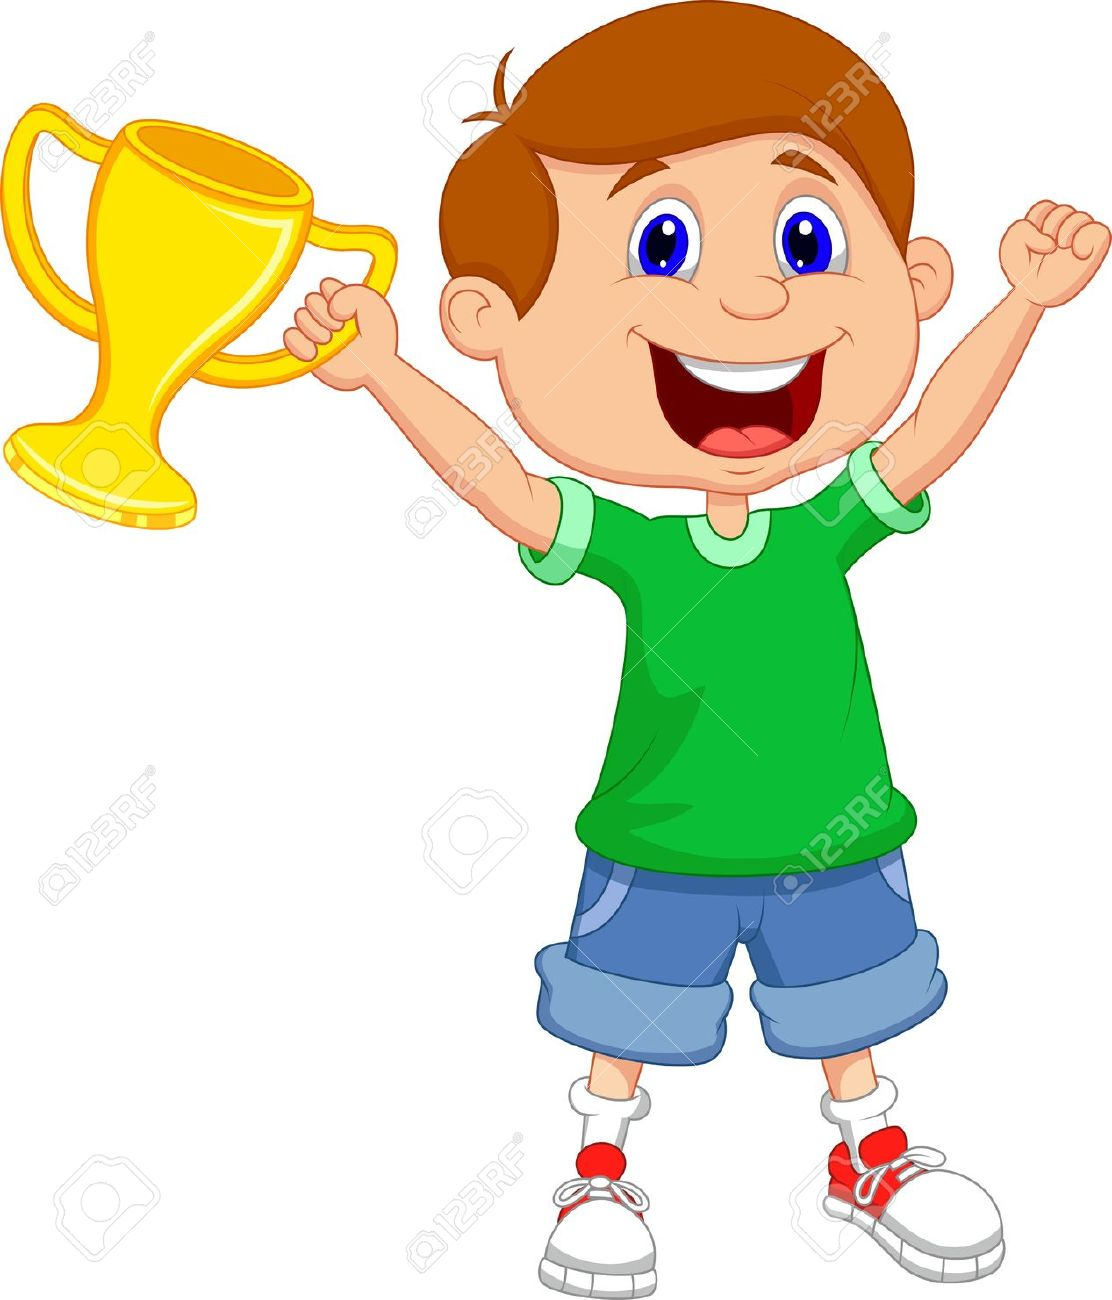 Winner pictures clipart svg free library Win Clipart | Clipart Panda - Free Clipart Images svg free library